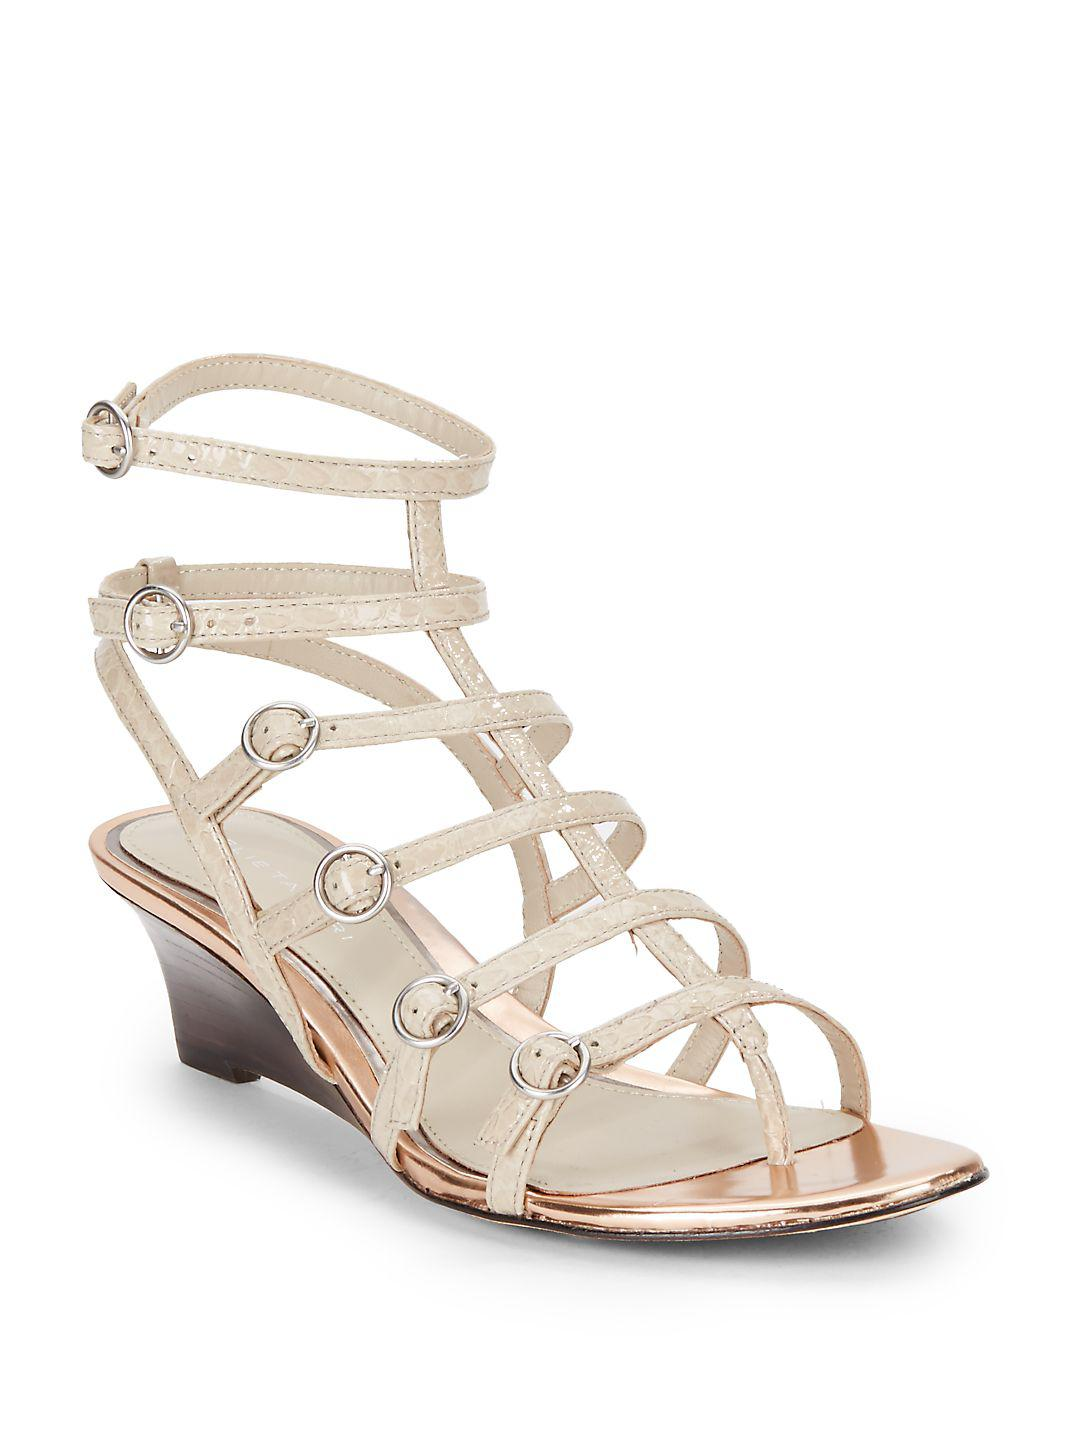 91a4b8a1a647 Lyst - Elie Tahari El-troy Gladiator Wedge Sandals